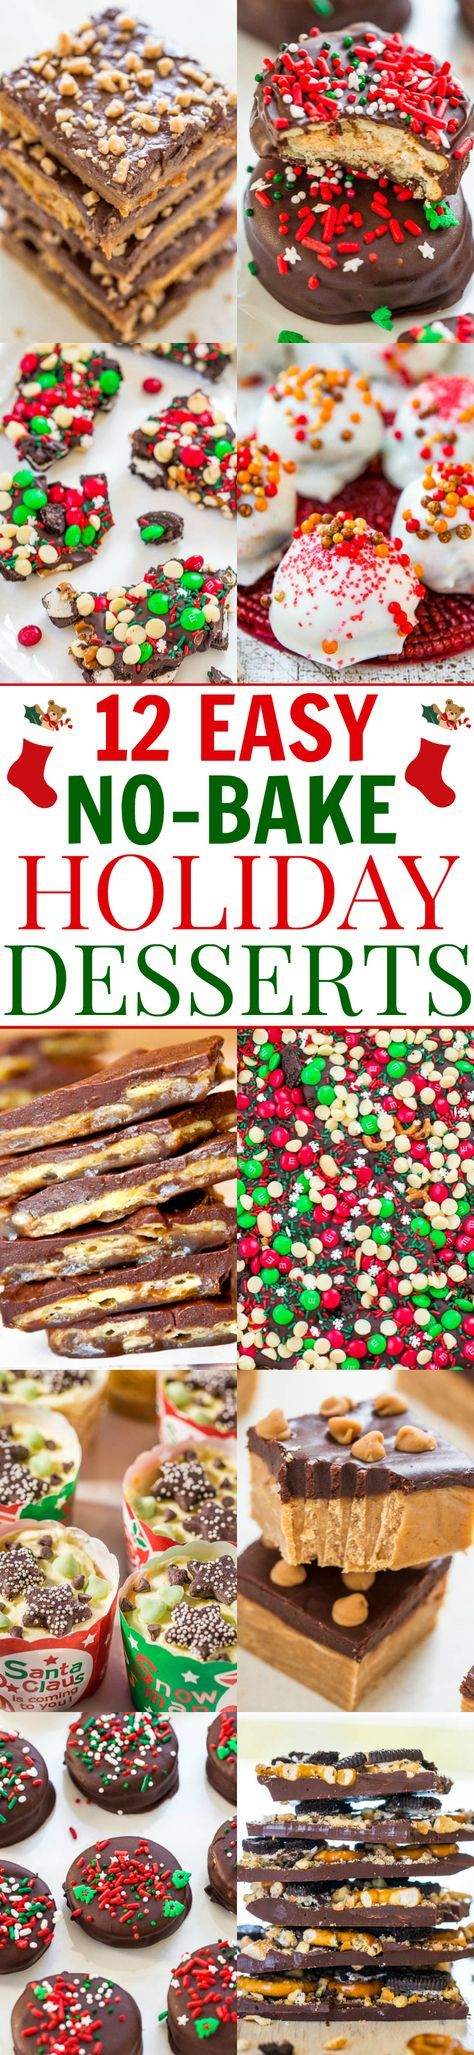 12 Easy No-Bake Holiday Desserts – No time to bake? Here are 12 FAST and EASY …